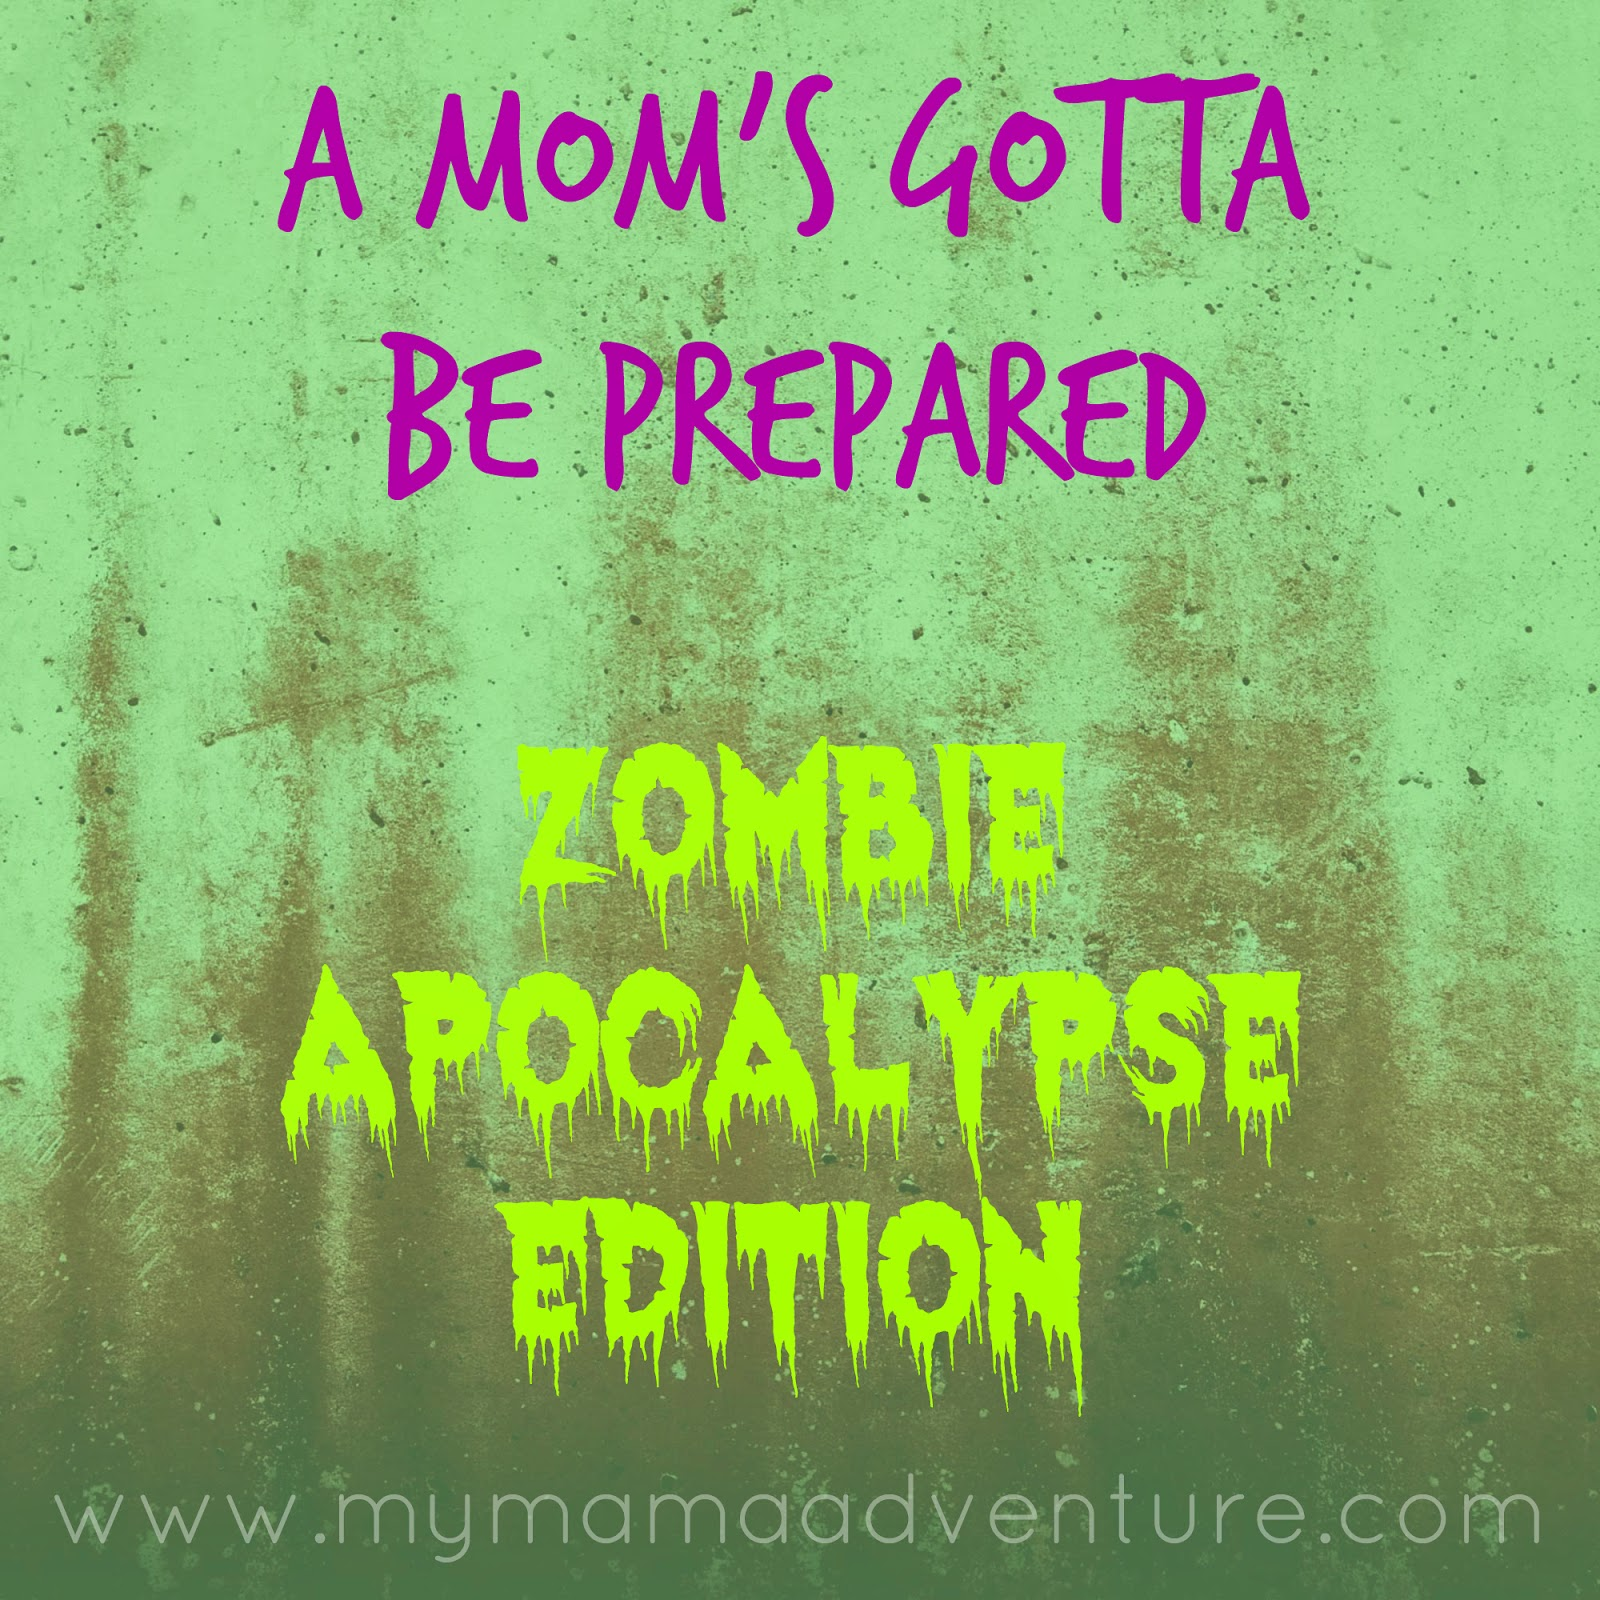 A Mom's Gotta Be Prepared - Zombie Apocalypse Edition (all in fun for the zombie fans out there)